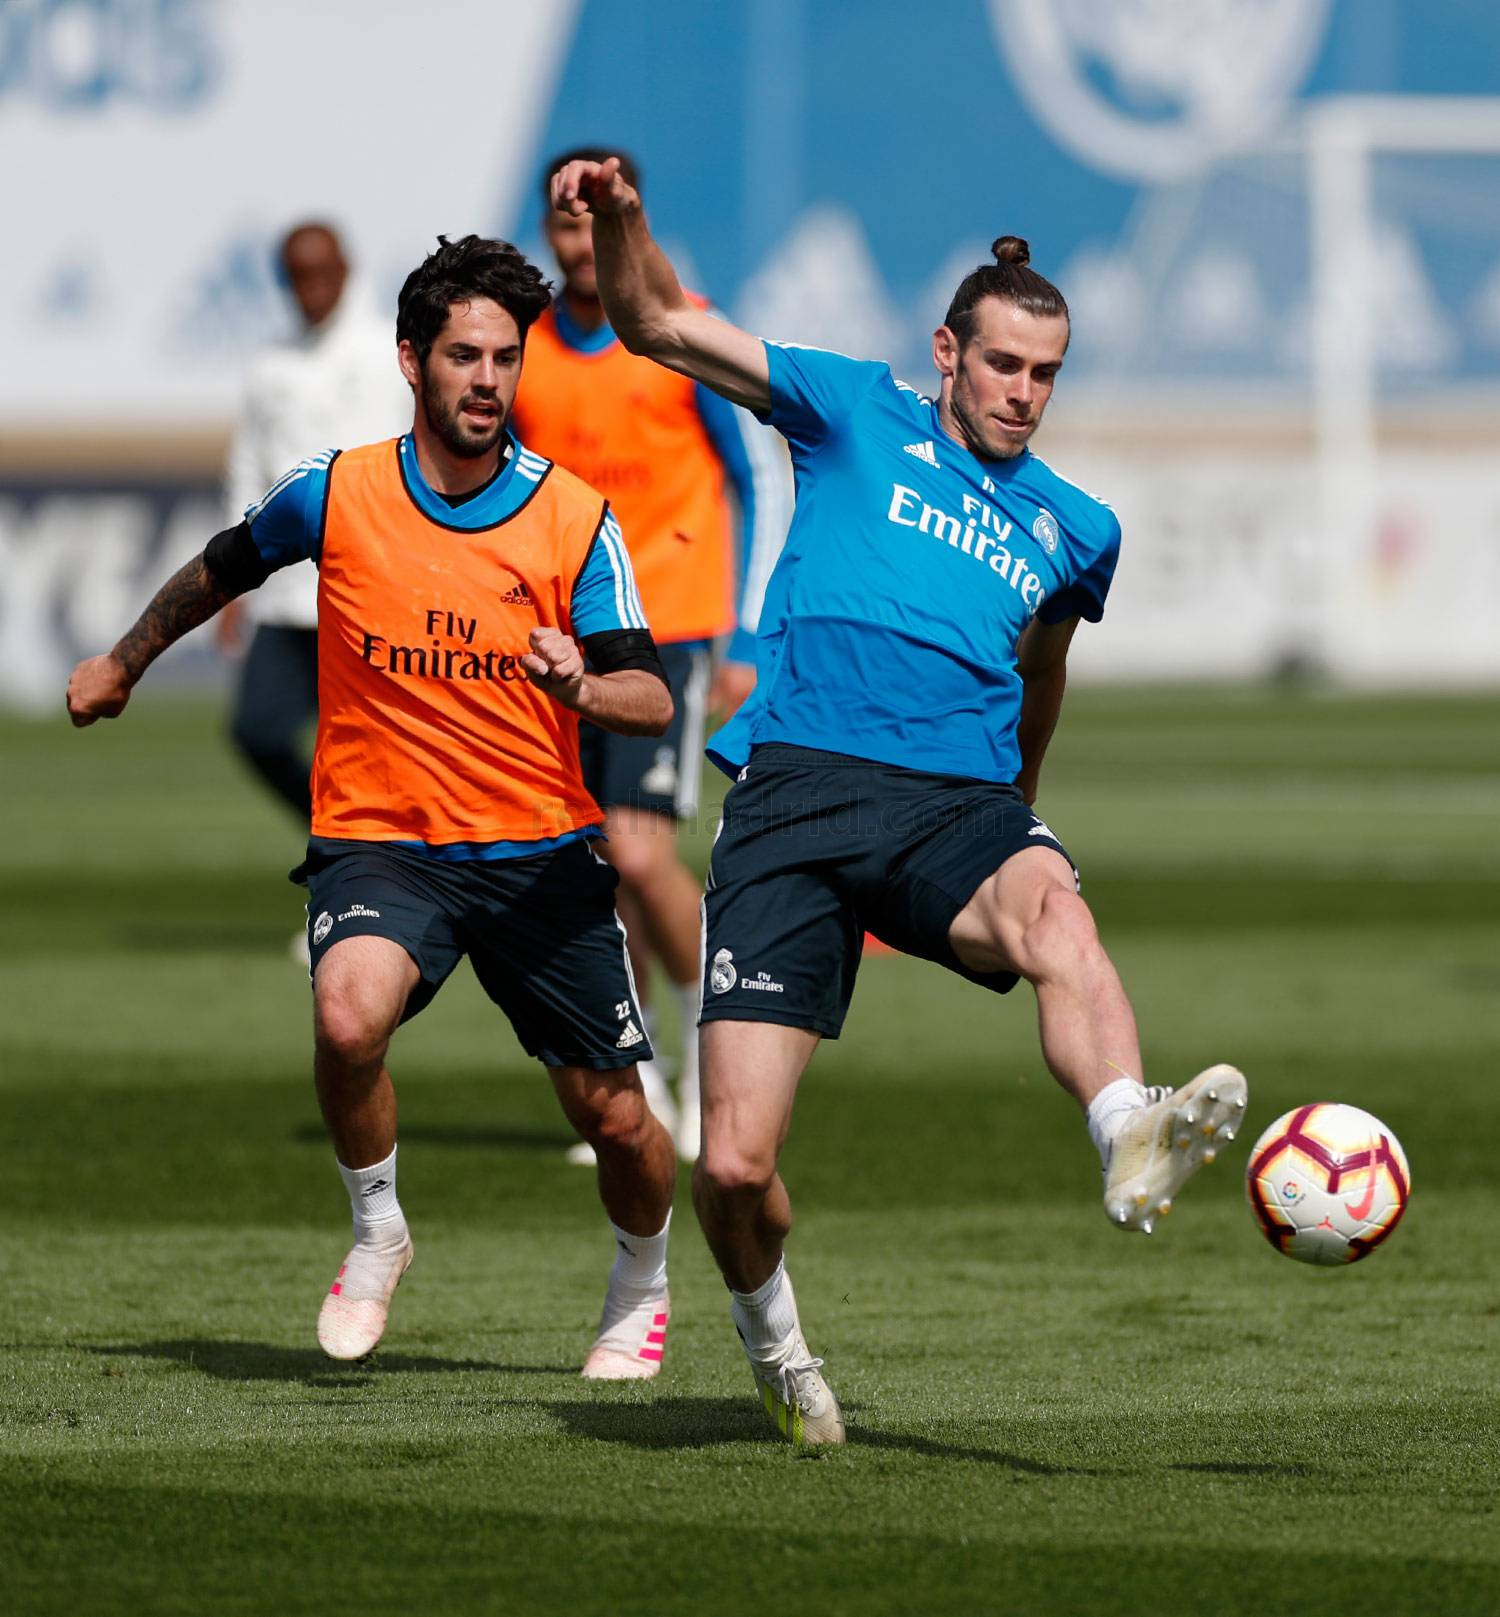 Real Madrid - Entrenamiento del Real Madrid - 22-04-2019